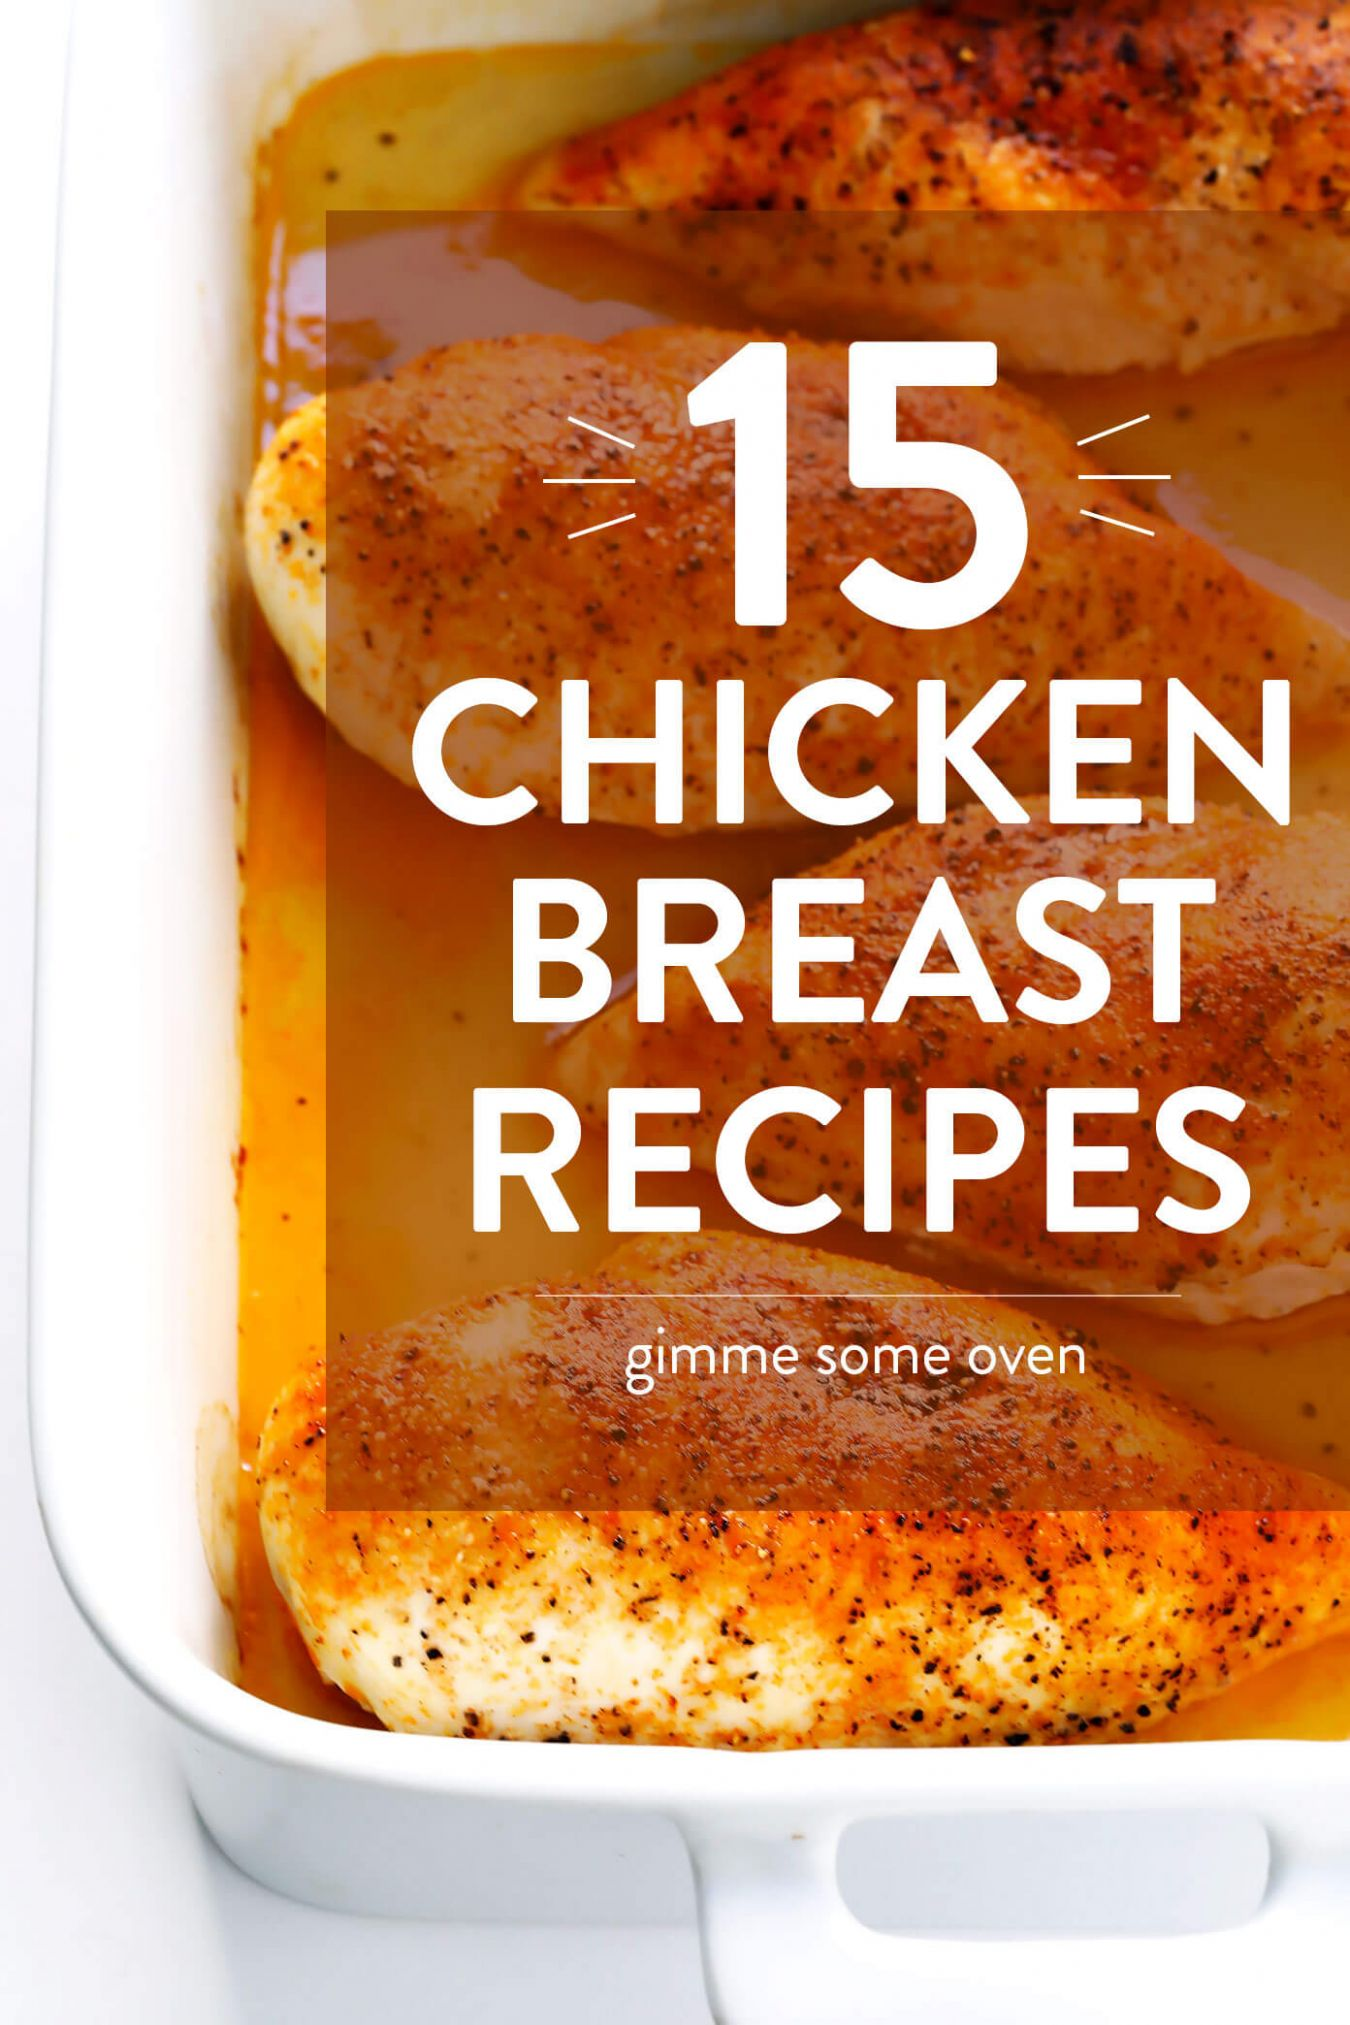 10 Favorite Chicken Breast Recipes | Gimme Some Oven - Easy Recipes Chicken Breast